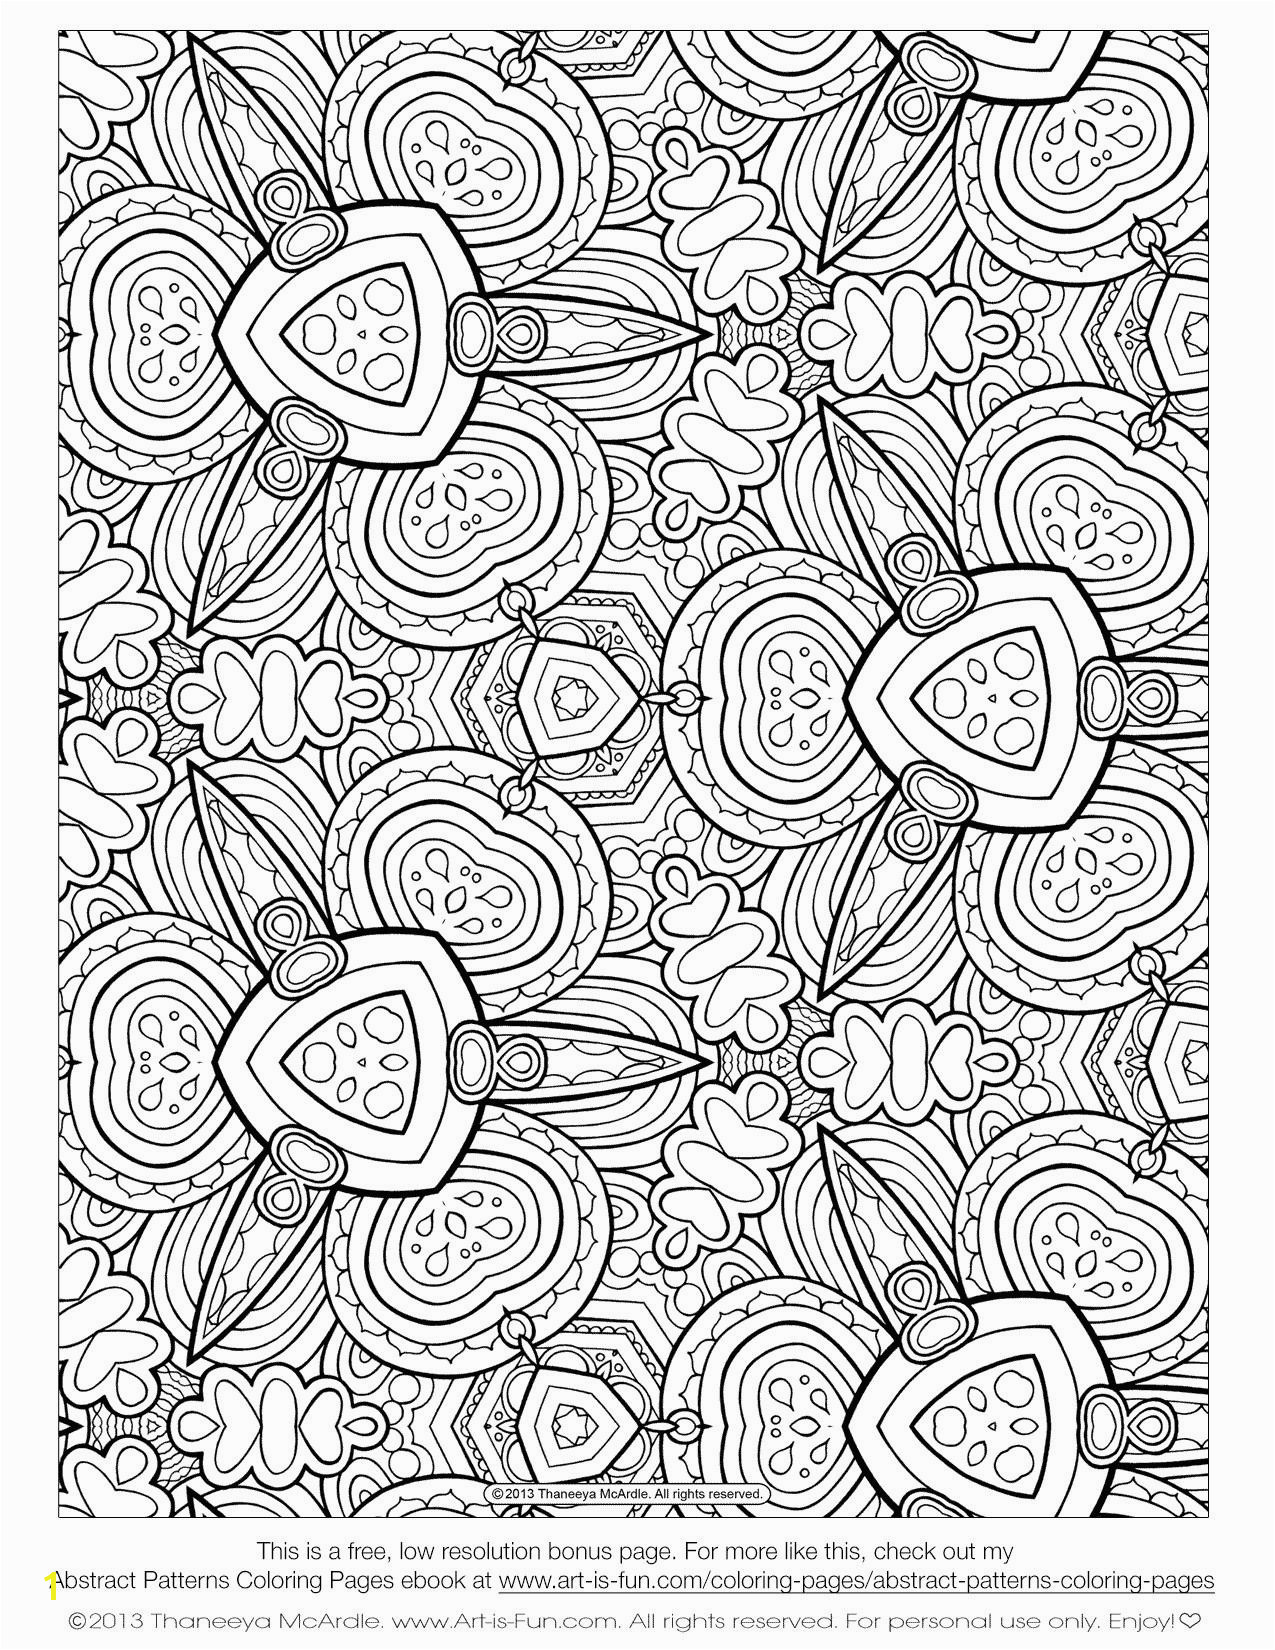 Coloring Pages For Adults To Print Free Beautiful Interactive Coloring Pages For Adults Lovely Awesome Page